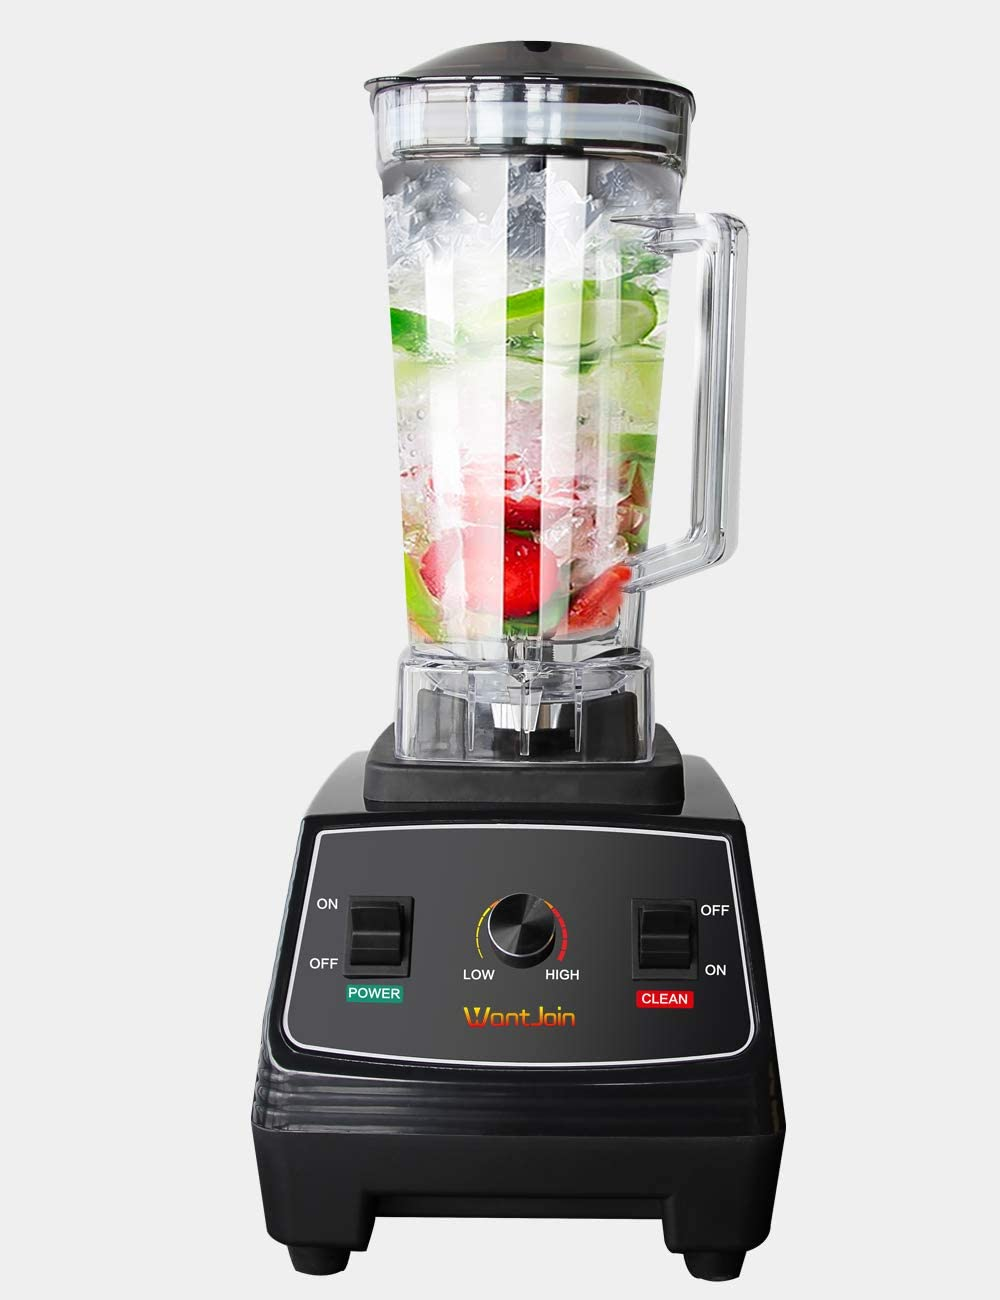 WantJoin Professional Blender, Countertop Blender 1800W, High Power Home and Commercial Blender with High Speed, Smoothie Maker 2200ml for Crusing Ice, Frozen Desser, Soup,fish (Glass)